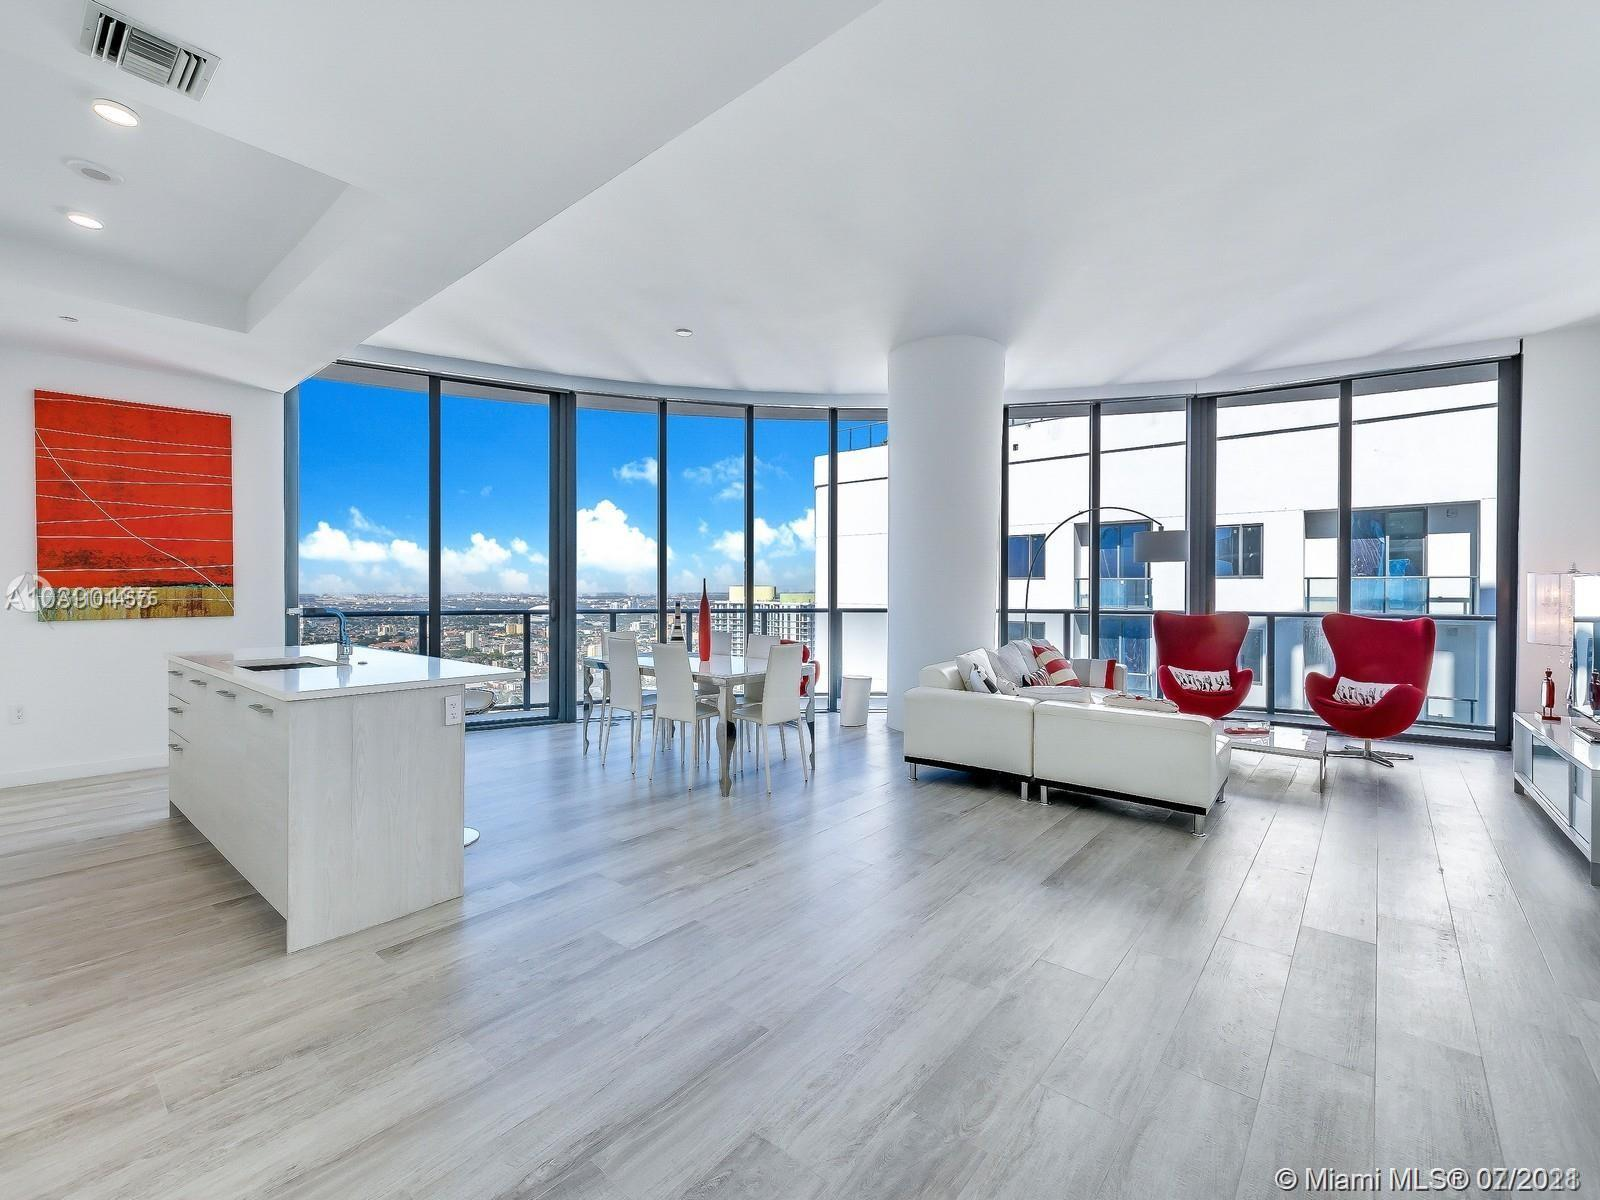 Beautiful Penthouse apartment in Brickell Heights West Tower.  Expansive views from the wrap-around terrace over Miami Skyline. Unit sqft is 1902 under air and 442 sqft terrace - see attached floor plan. This 3/3.5 corner residence featuring custom cabinetry & Electric blinds. Floor-to-ceiling windows create a spacious contemporary ambiance.  The unit has 2 parking spaces  (with a lift).  Brickell Heights amenities include Equinox Gym & Spa, Rooftop Sky Pool Deck, Business Center, and 24/7 Concierge. Only 3 neighboring penthouse apartments. A very private residence in the heart of Brickell village.